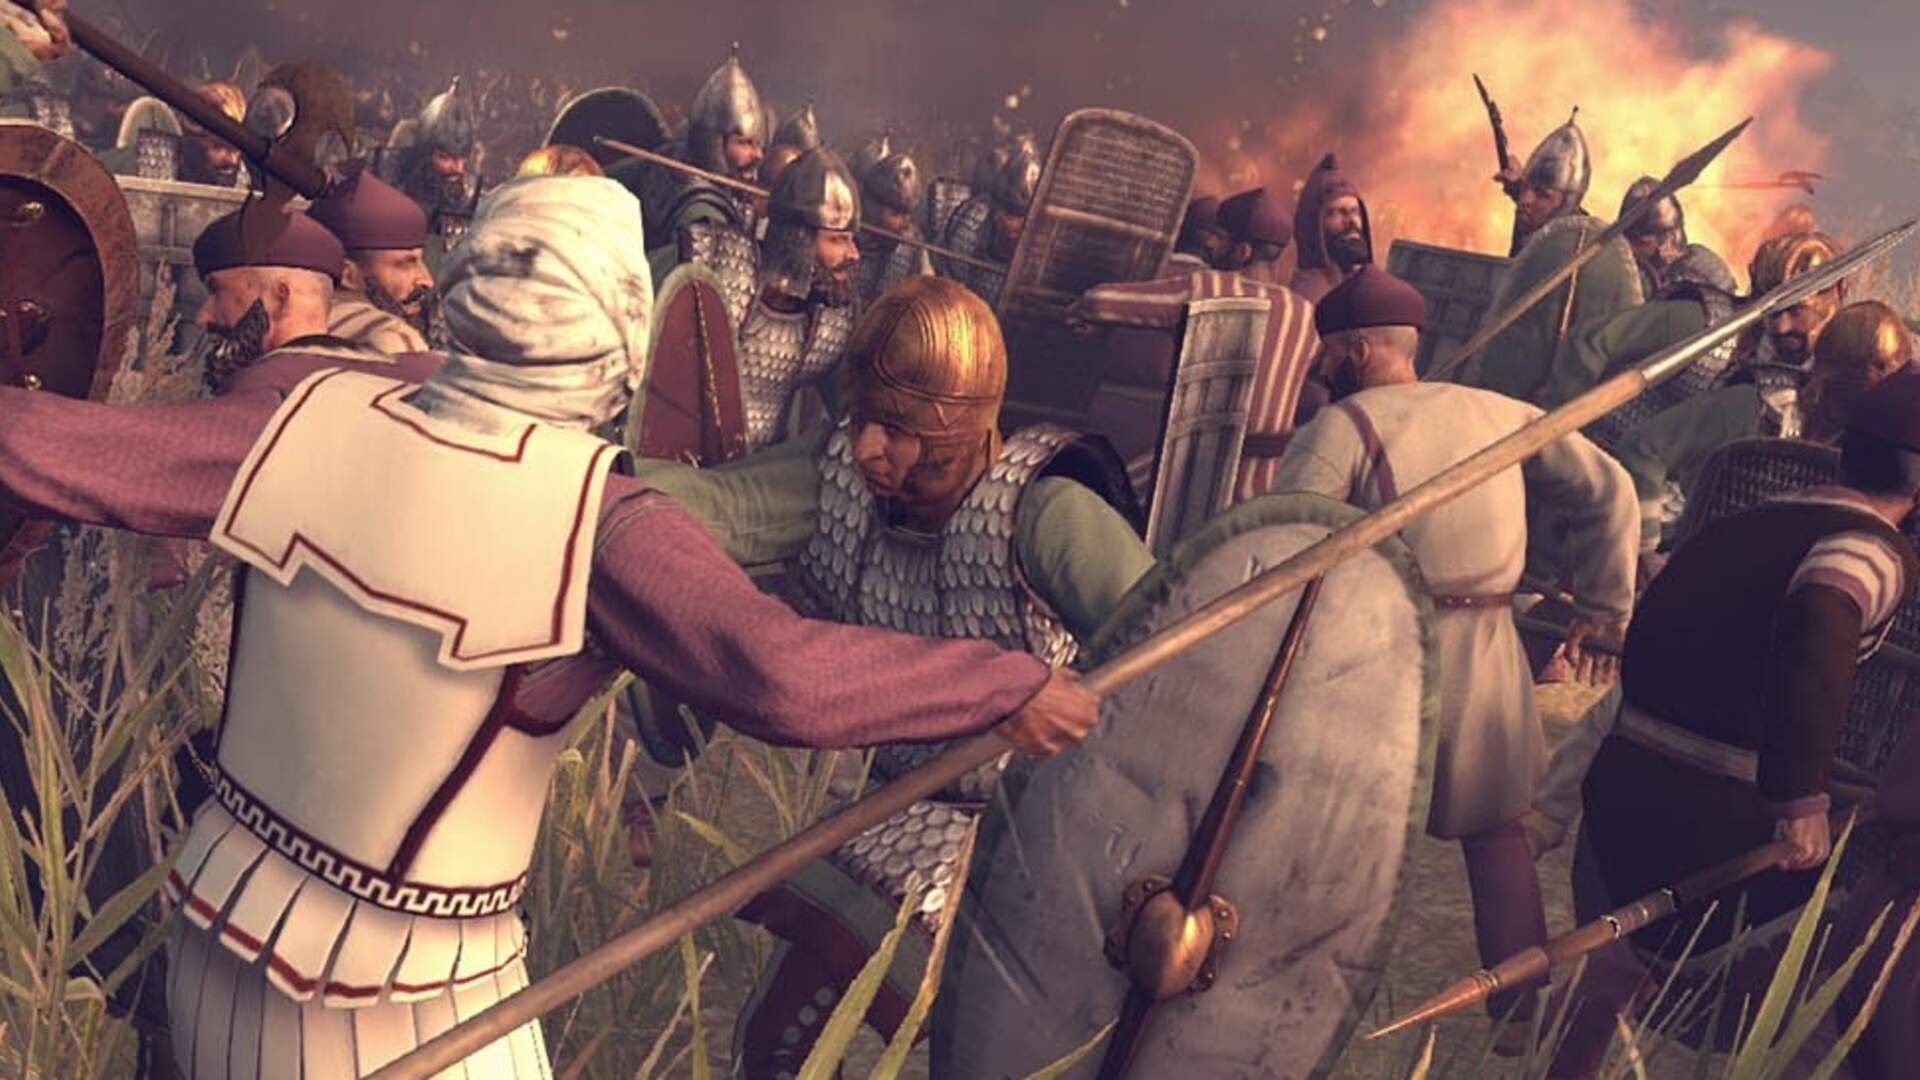 Total War: Rome 2 Review Bombed Over Female Generals, Creative Assembly Responds